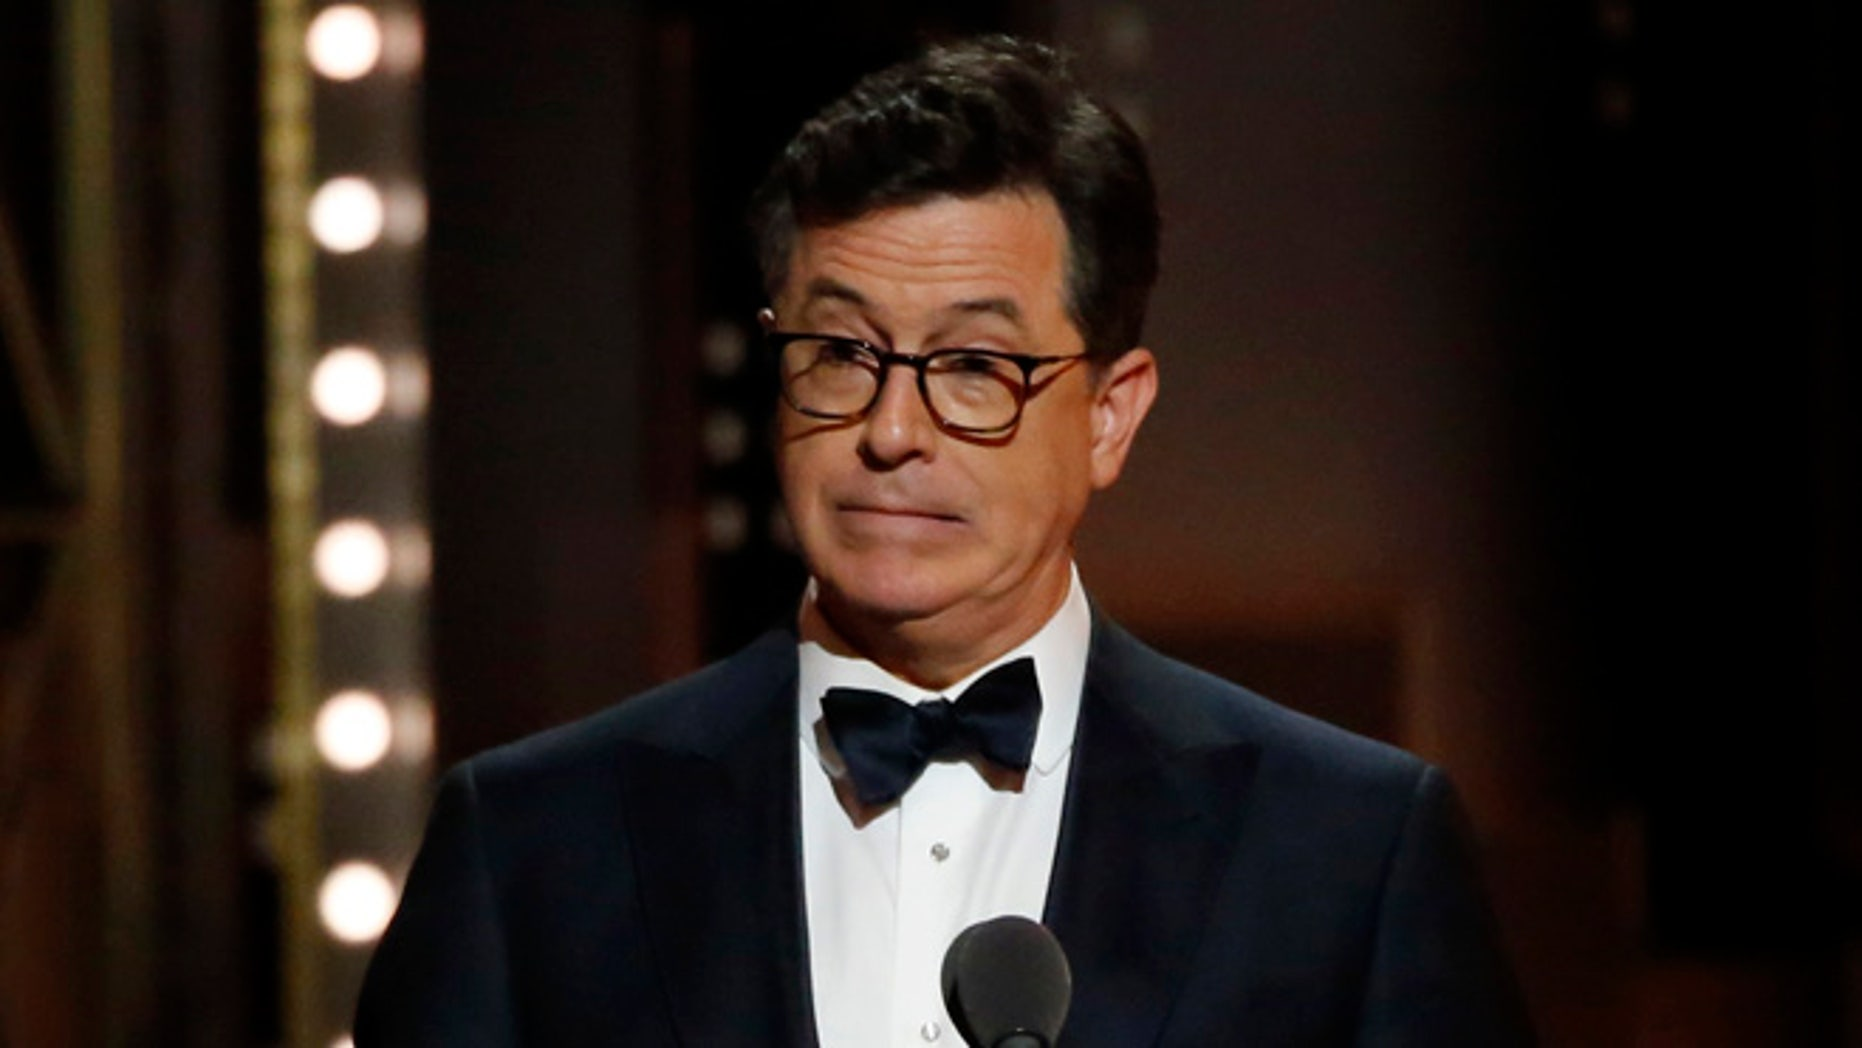 The Stephen Colbert-hosted 2017 Emmys were one of the least watched ever.